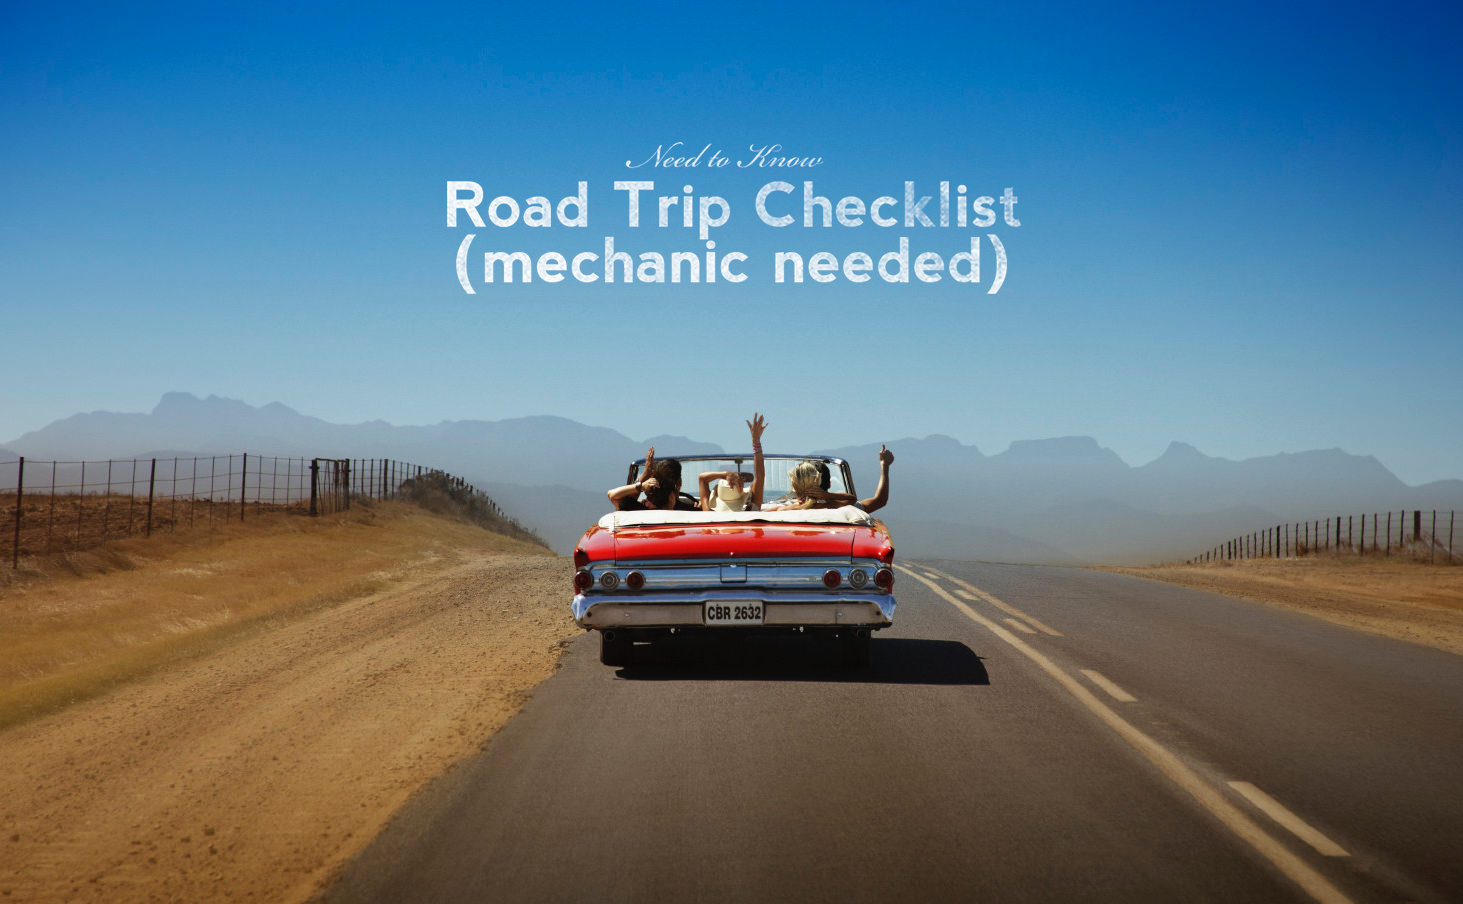 Road Trip Checklist (Mechanic Needed)